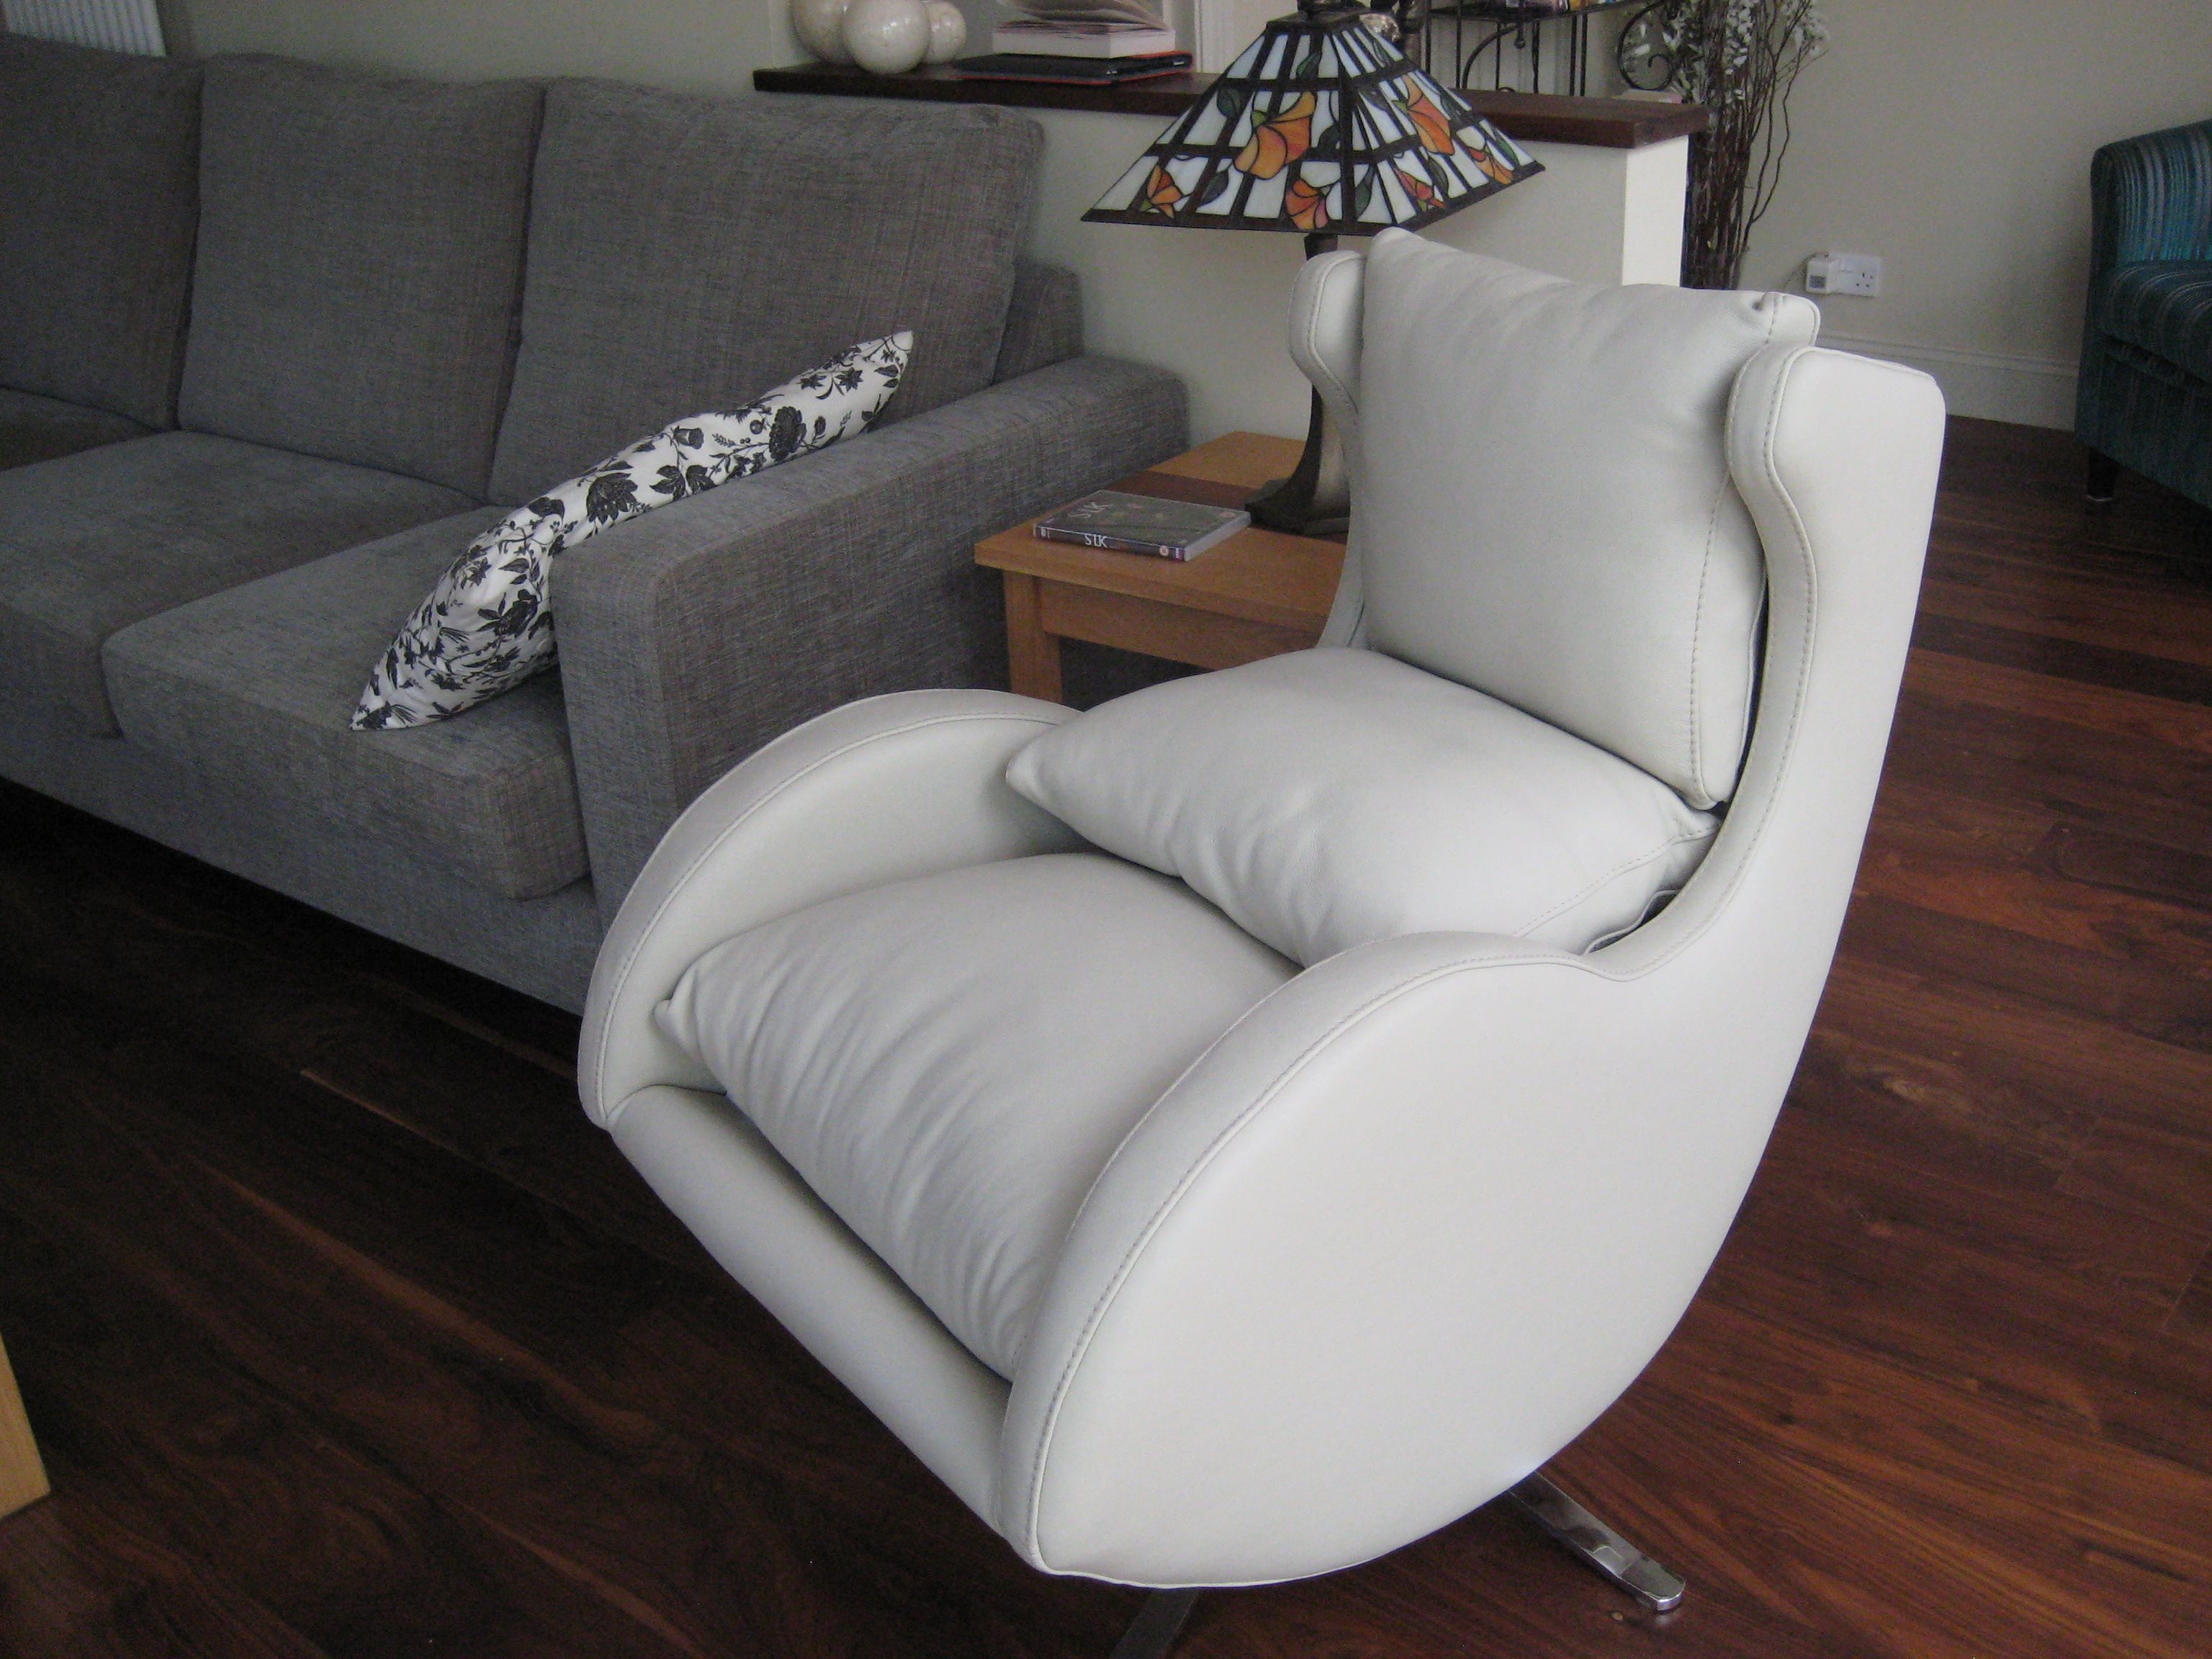 White leather on our popular compact designer swivel chair